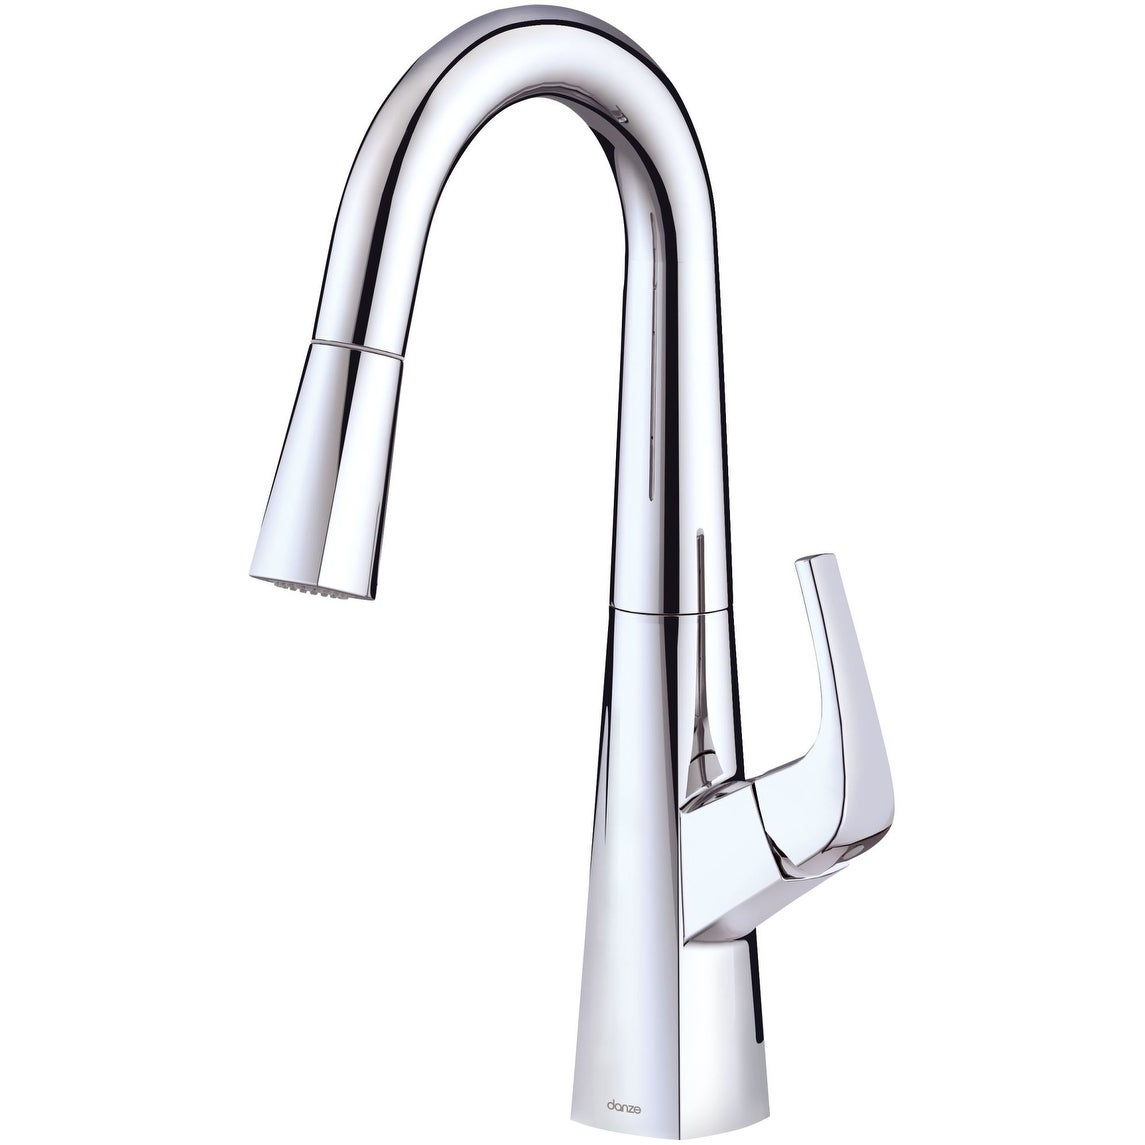 Danze D150518 Vaughn 1.75 GPM Single Hole Pull Down Kitchen Faucet